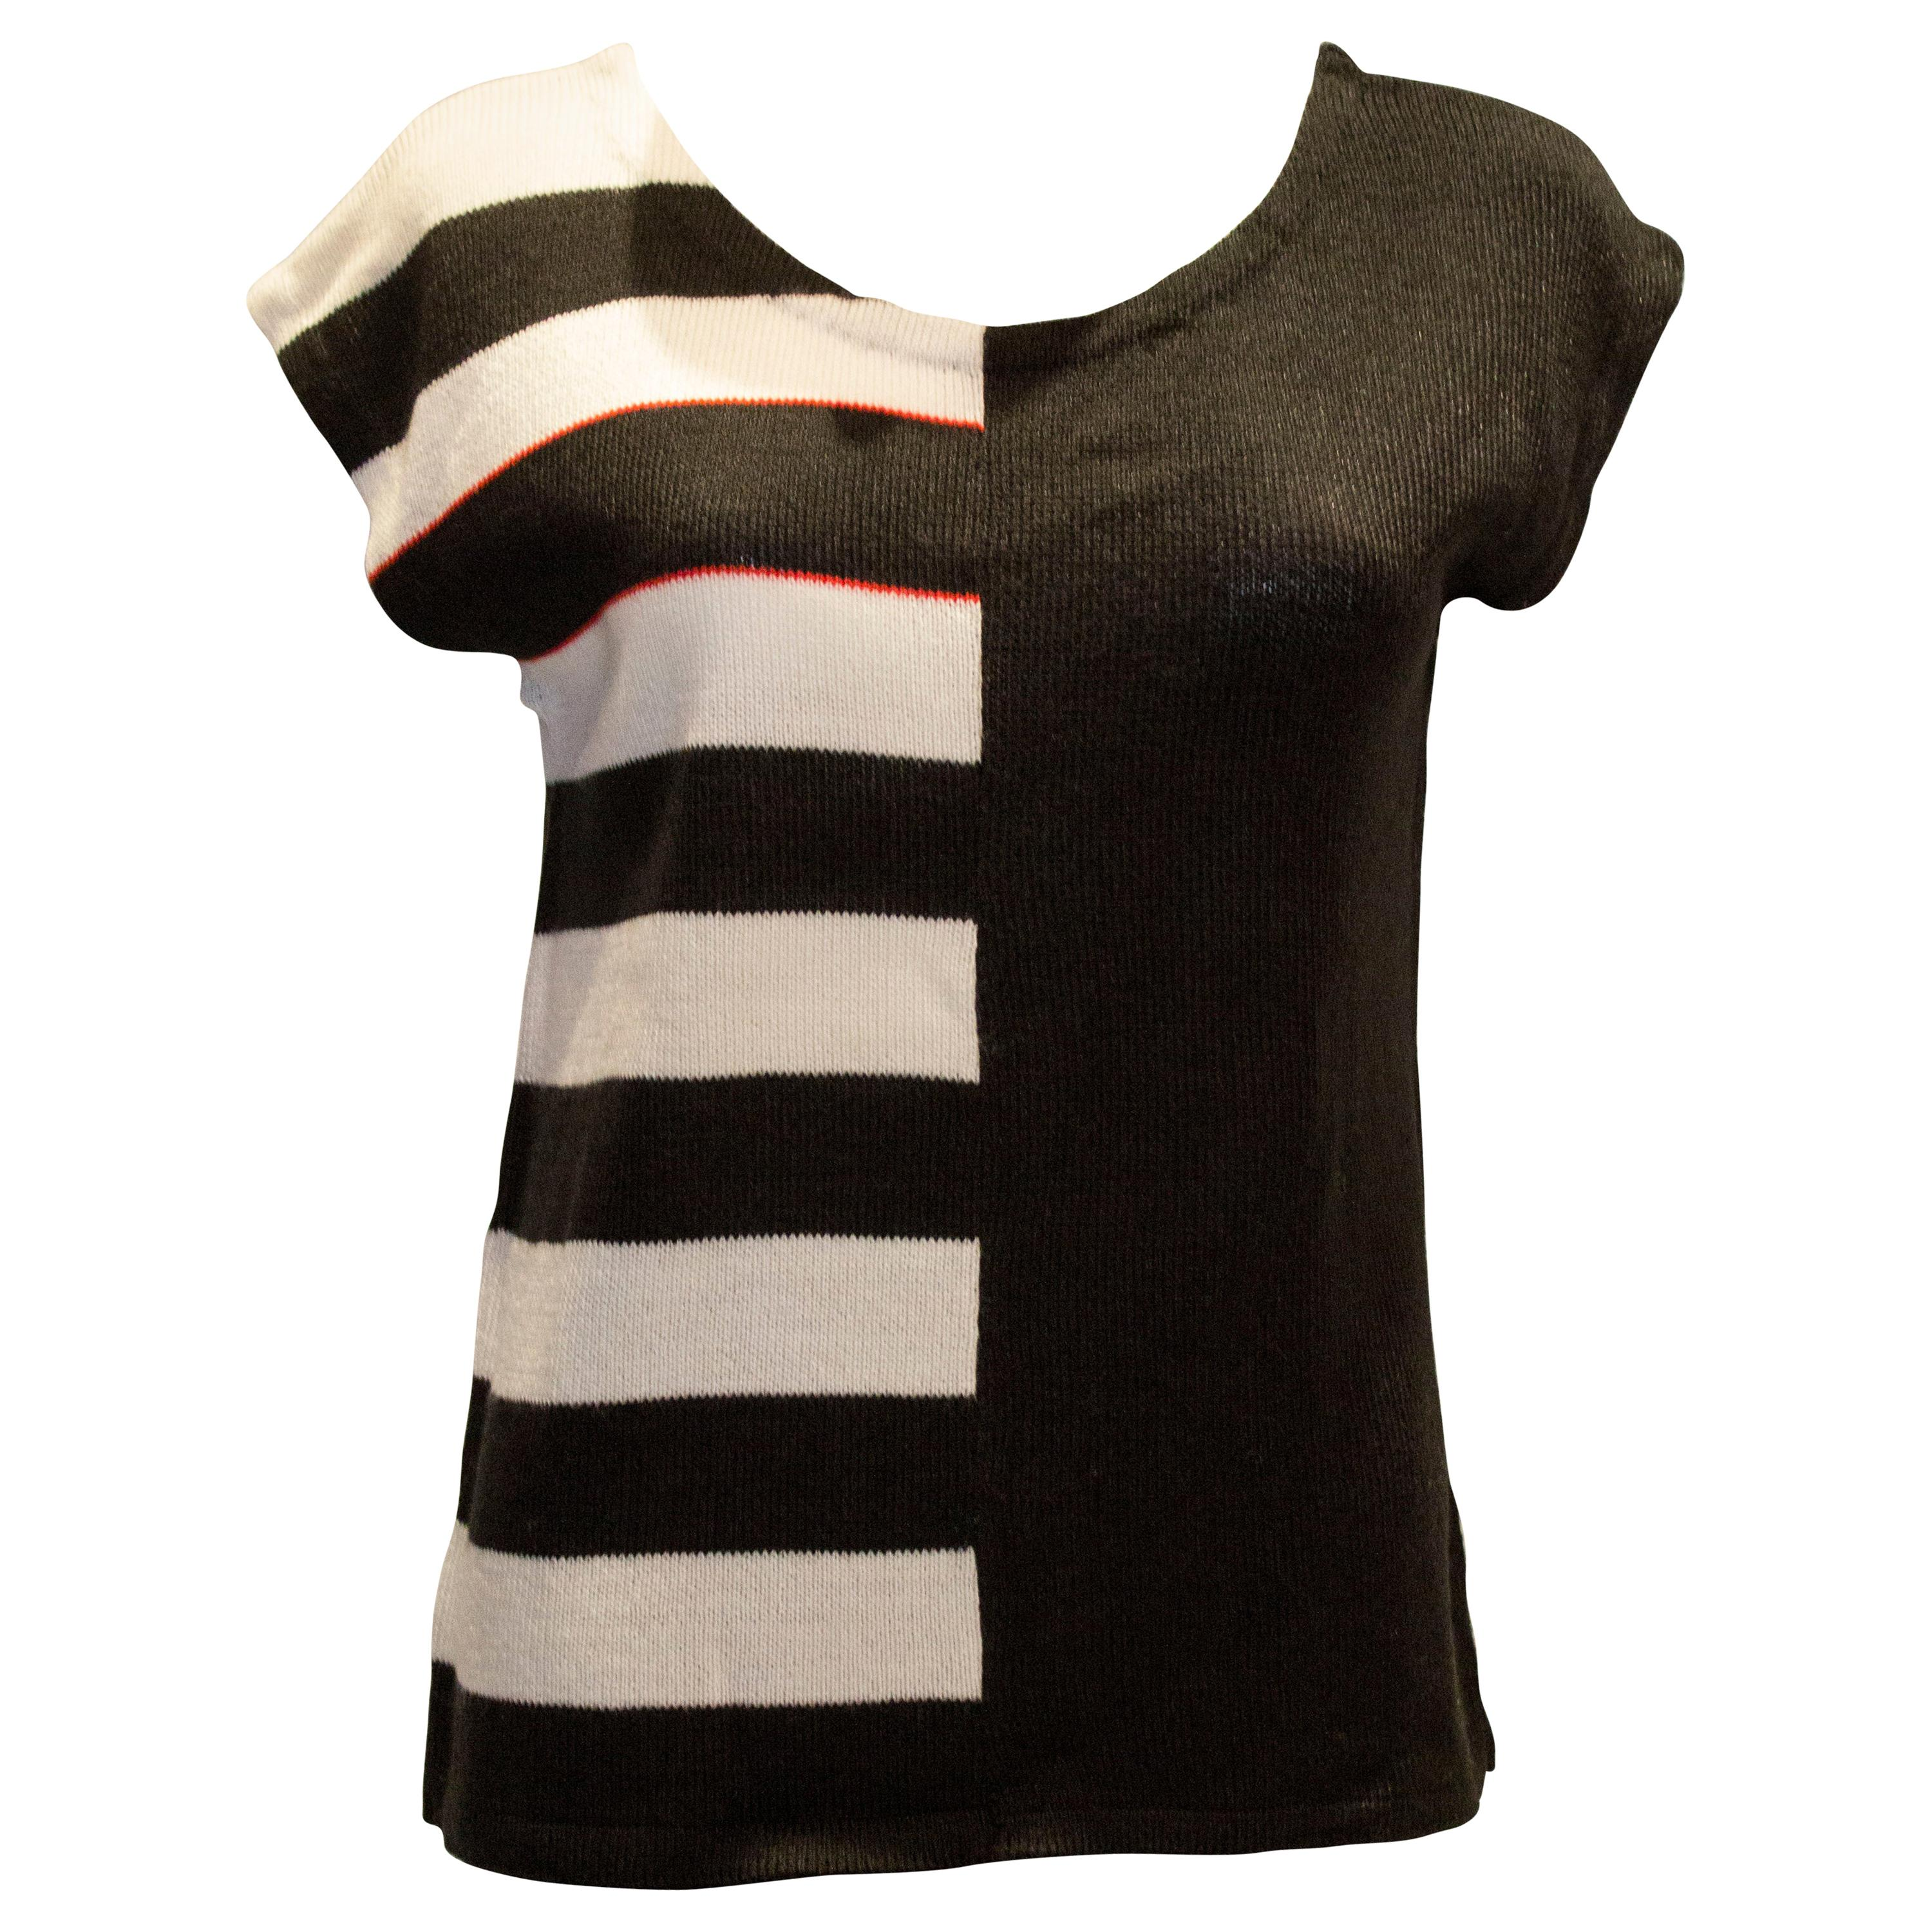 Vintage Mary Quant Black and White Knitted Top